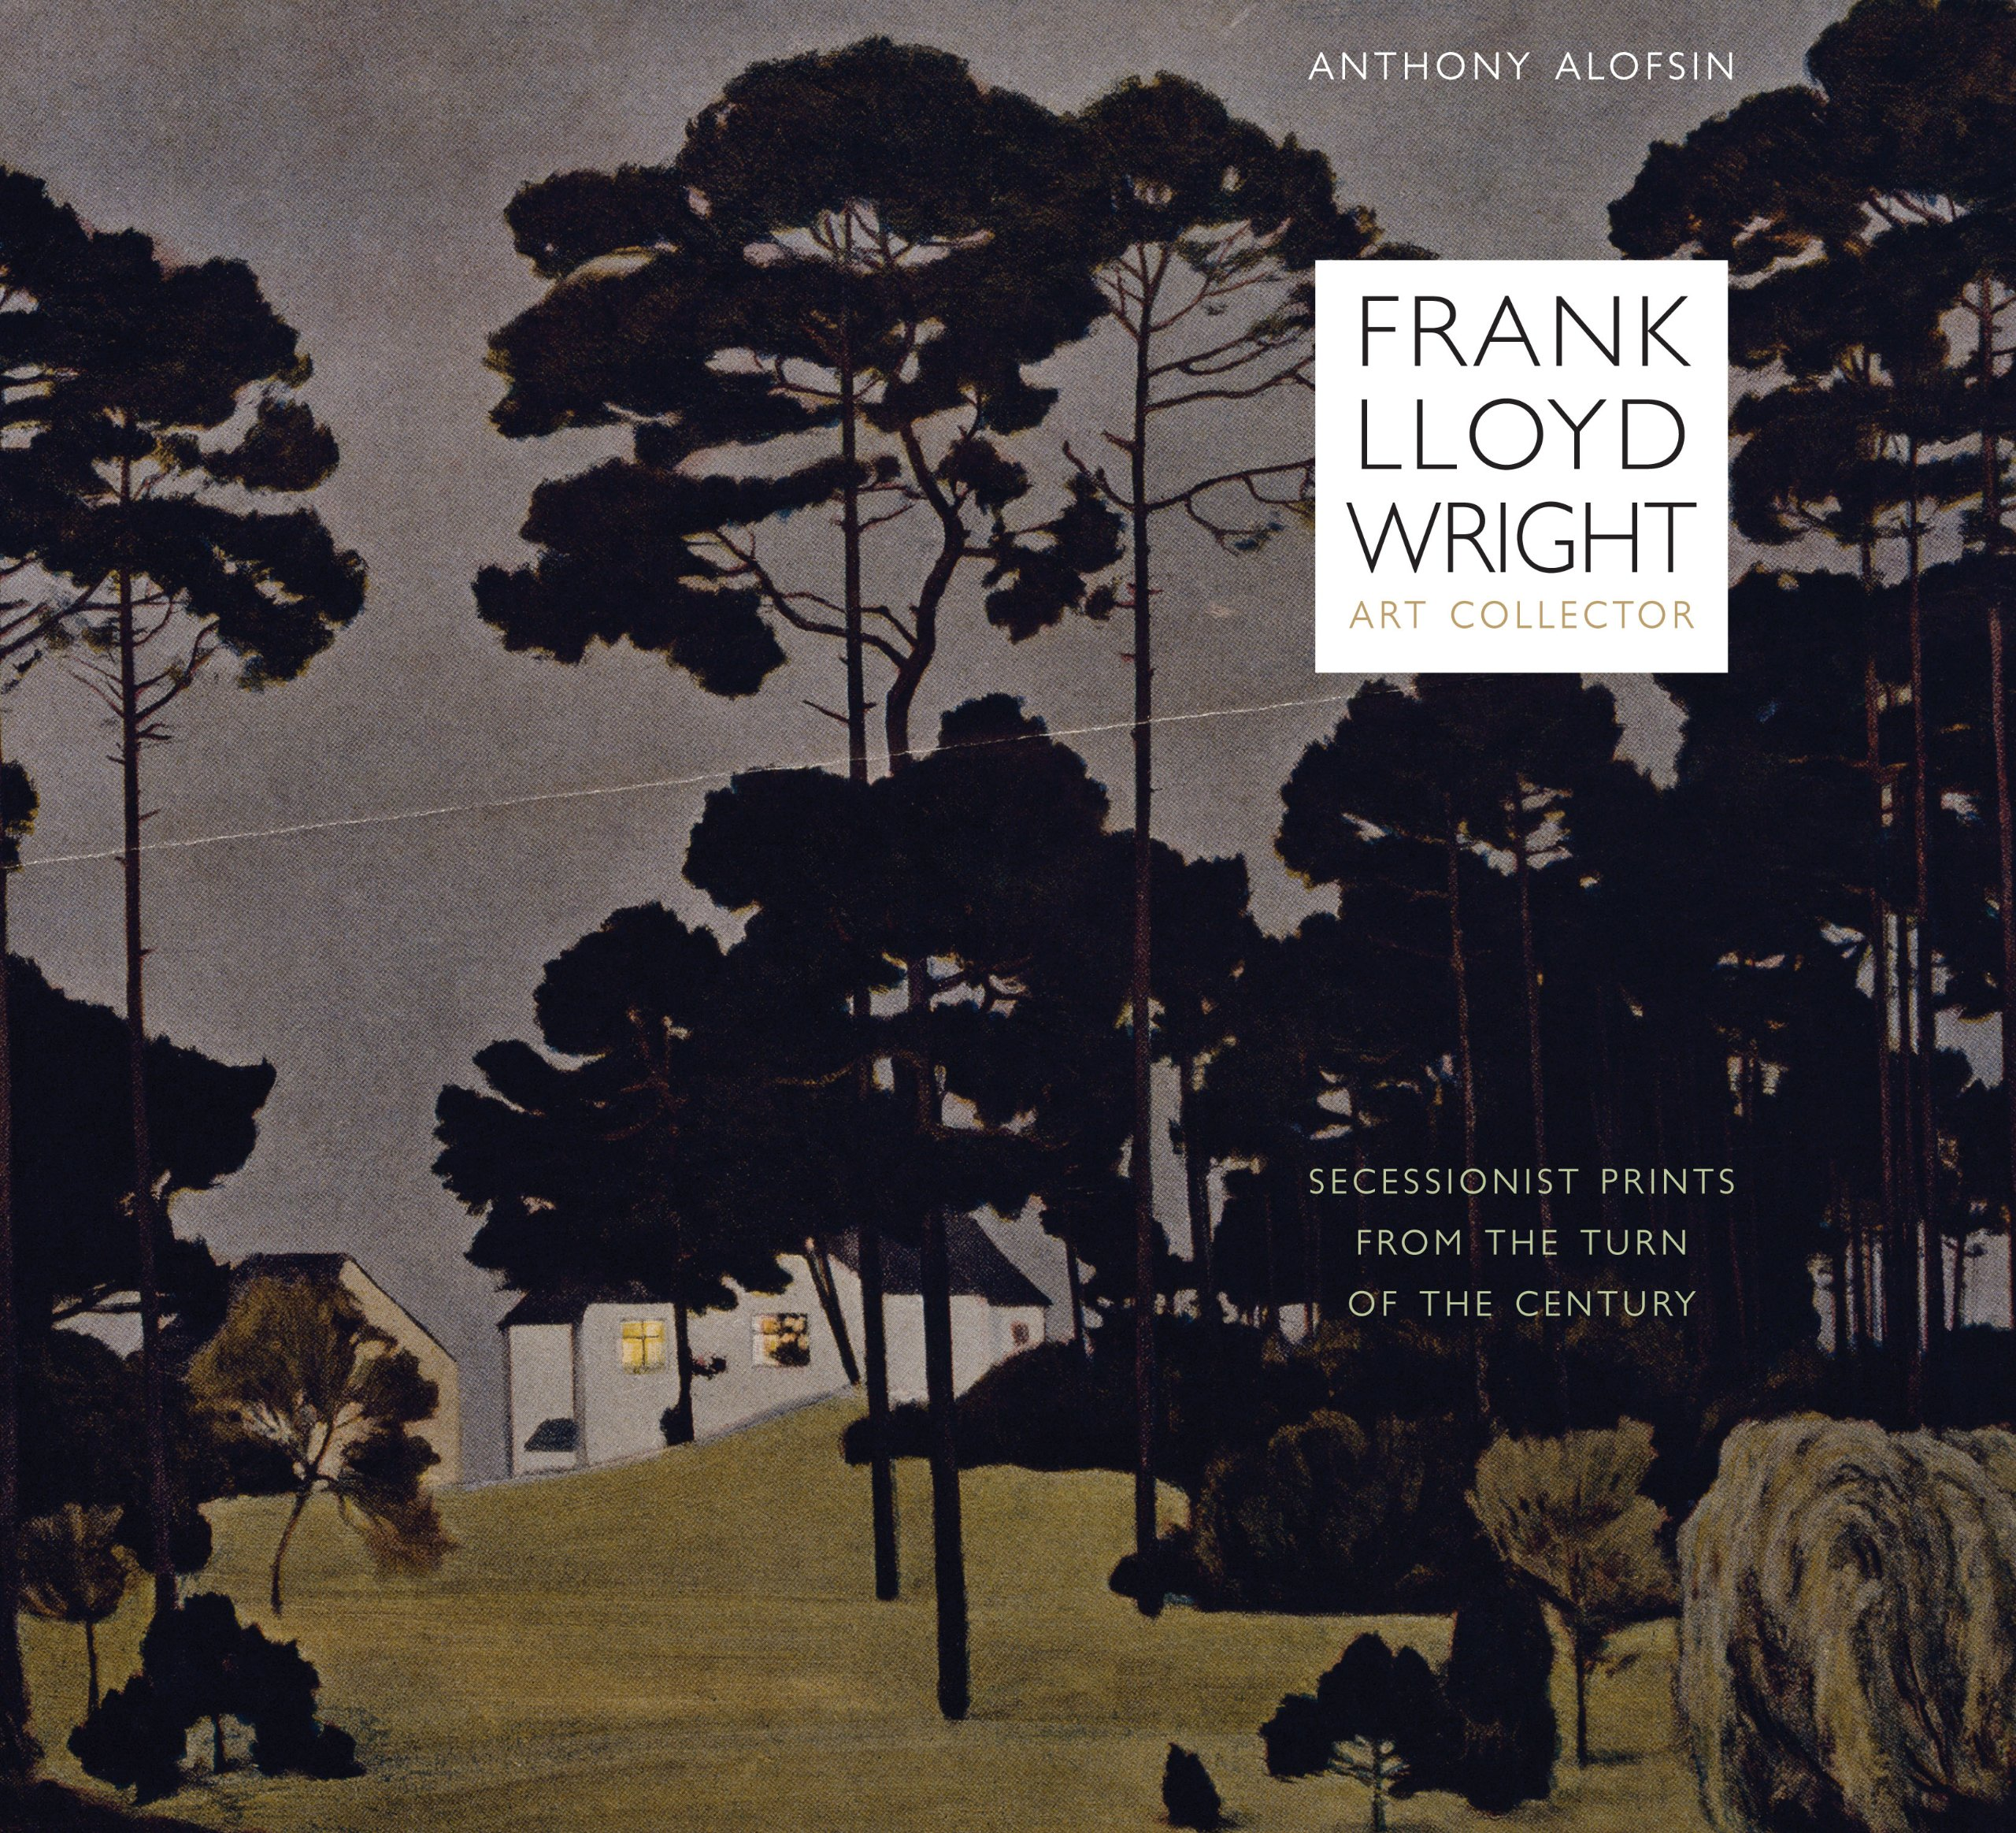 Frank Lloyd Wright, Art Collector: Secessionist Prints from the Turn of the Century (Roger Fullington Series in Architecture) PDF